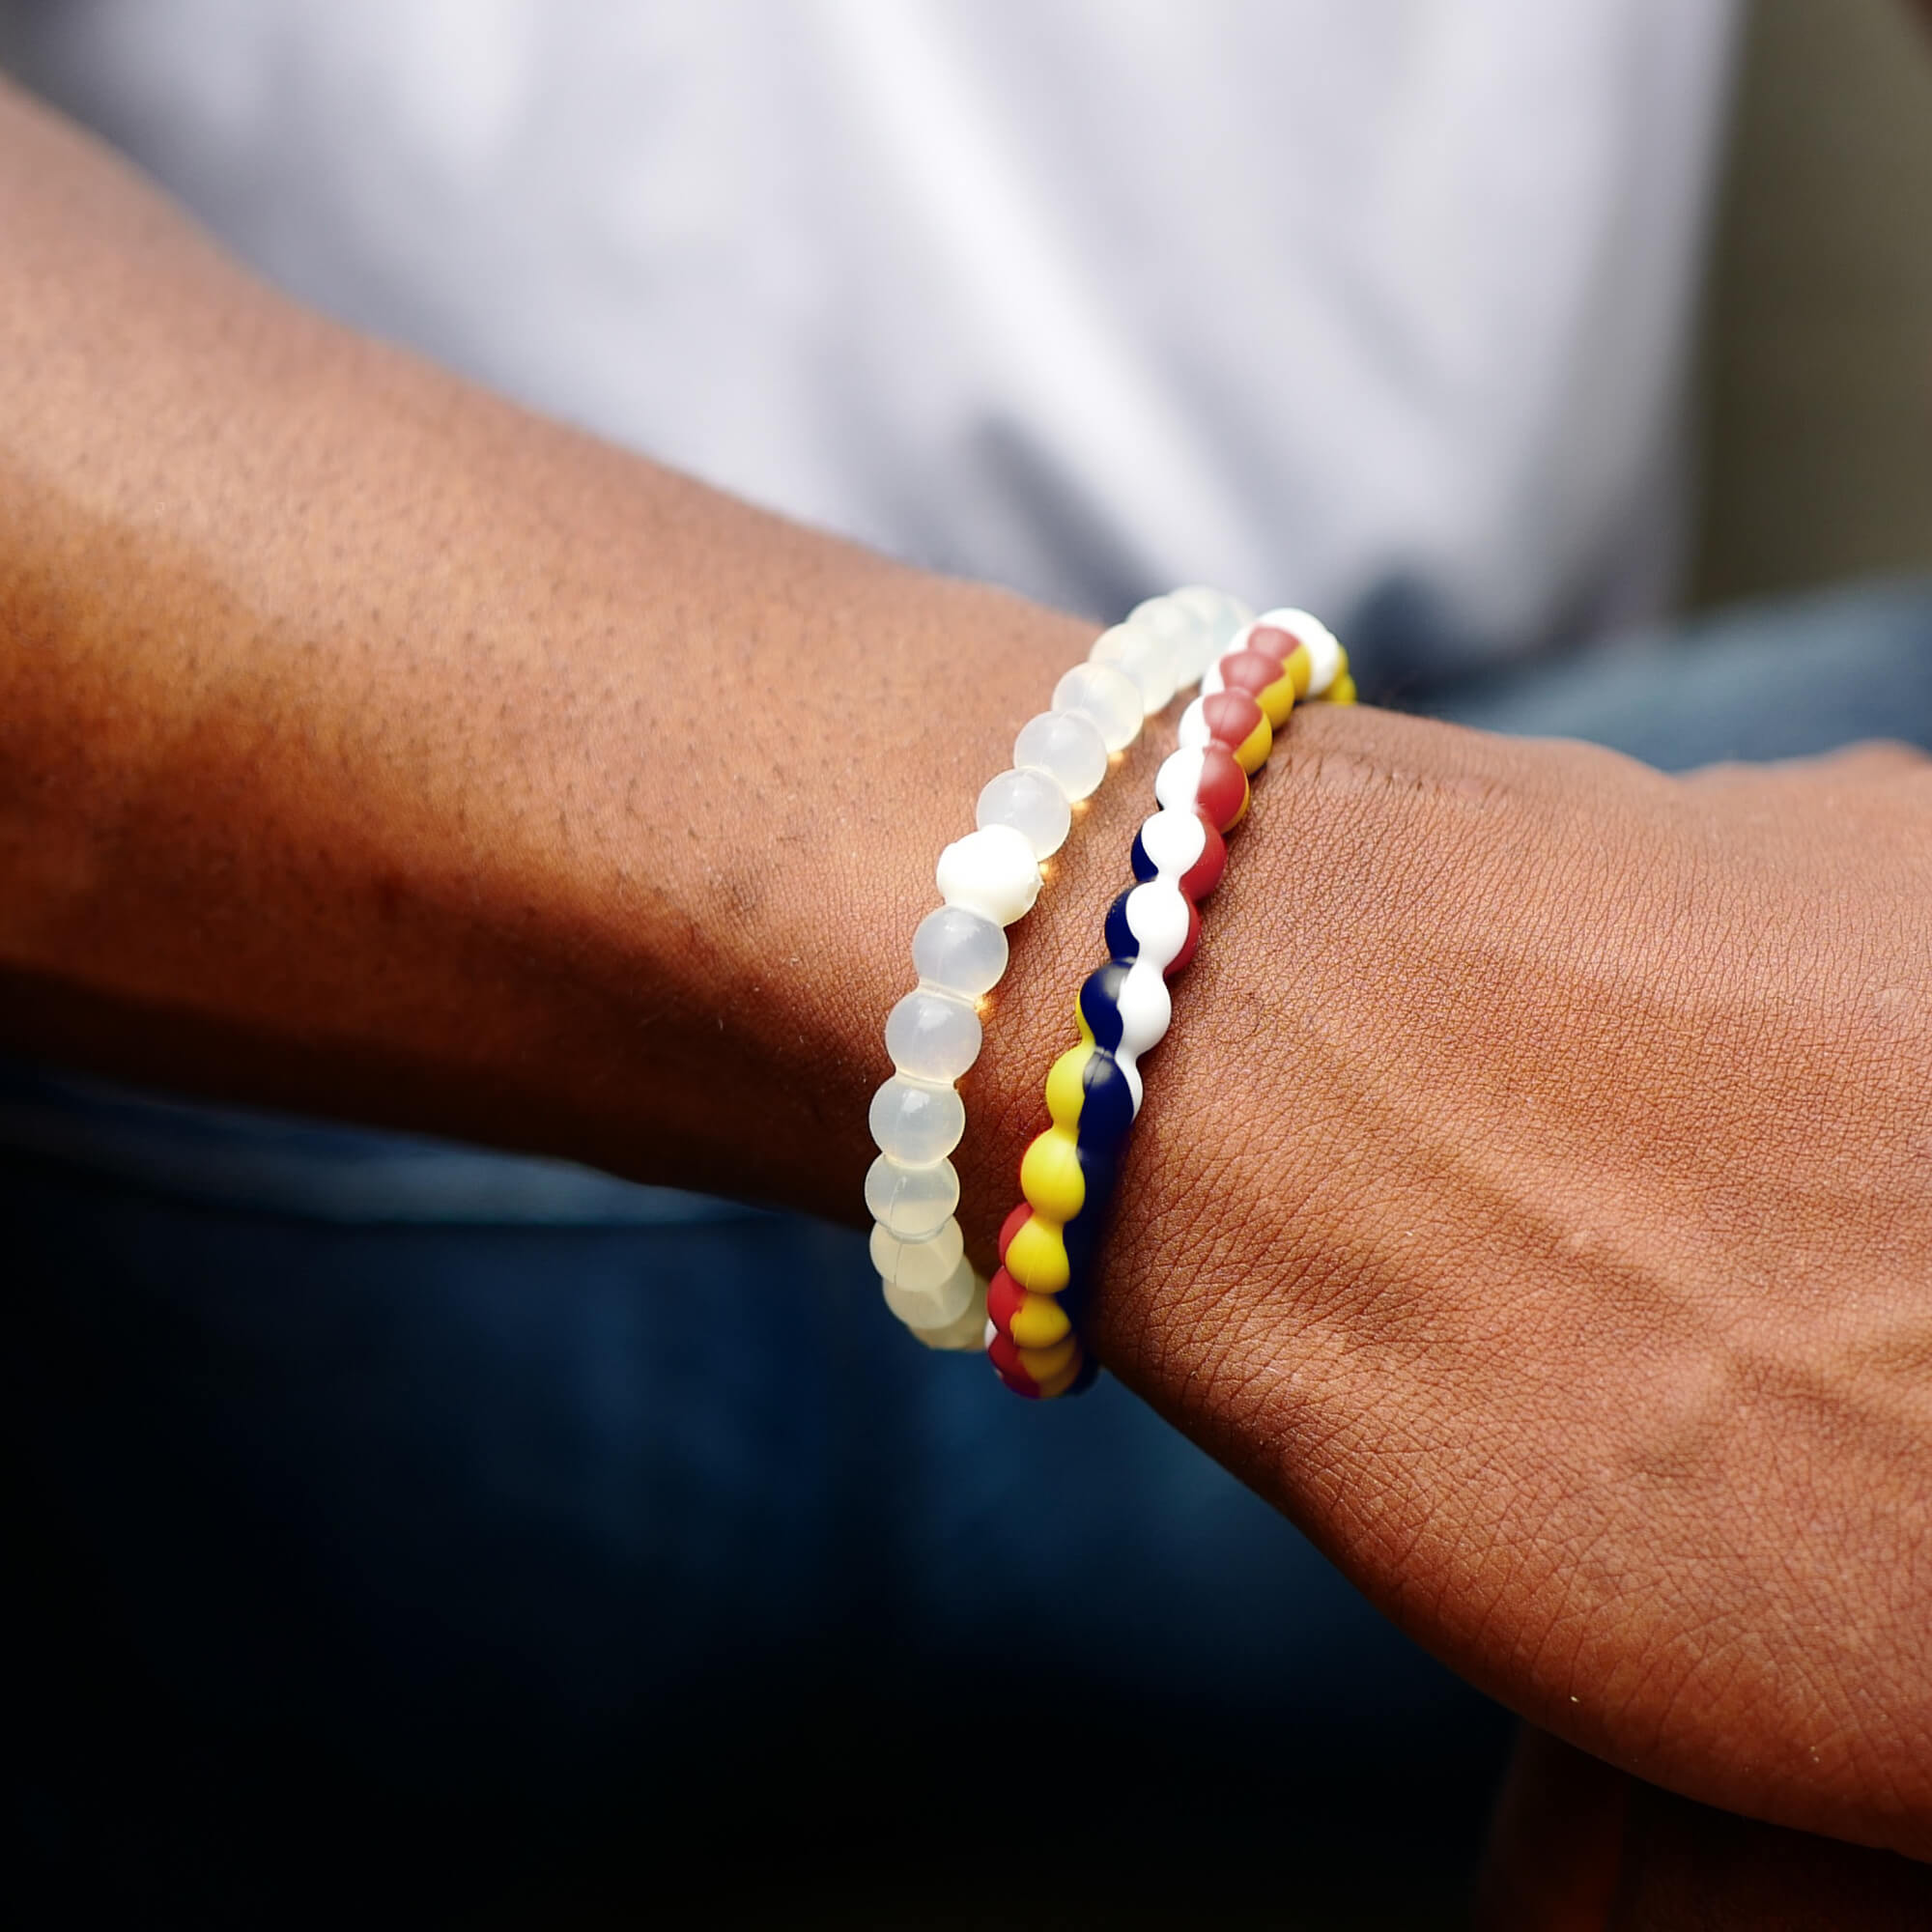 A hand wearing a red, yellow, white and navy silicone beaded bracelet.